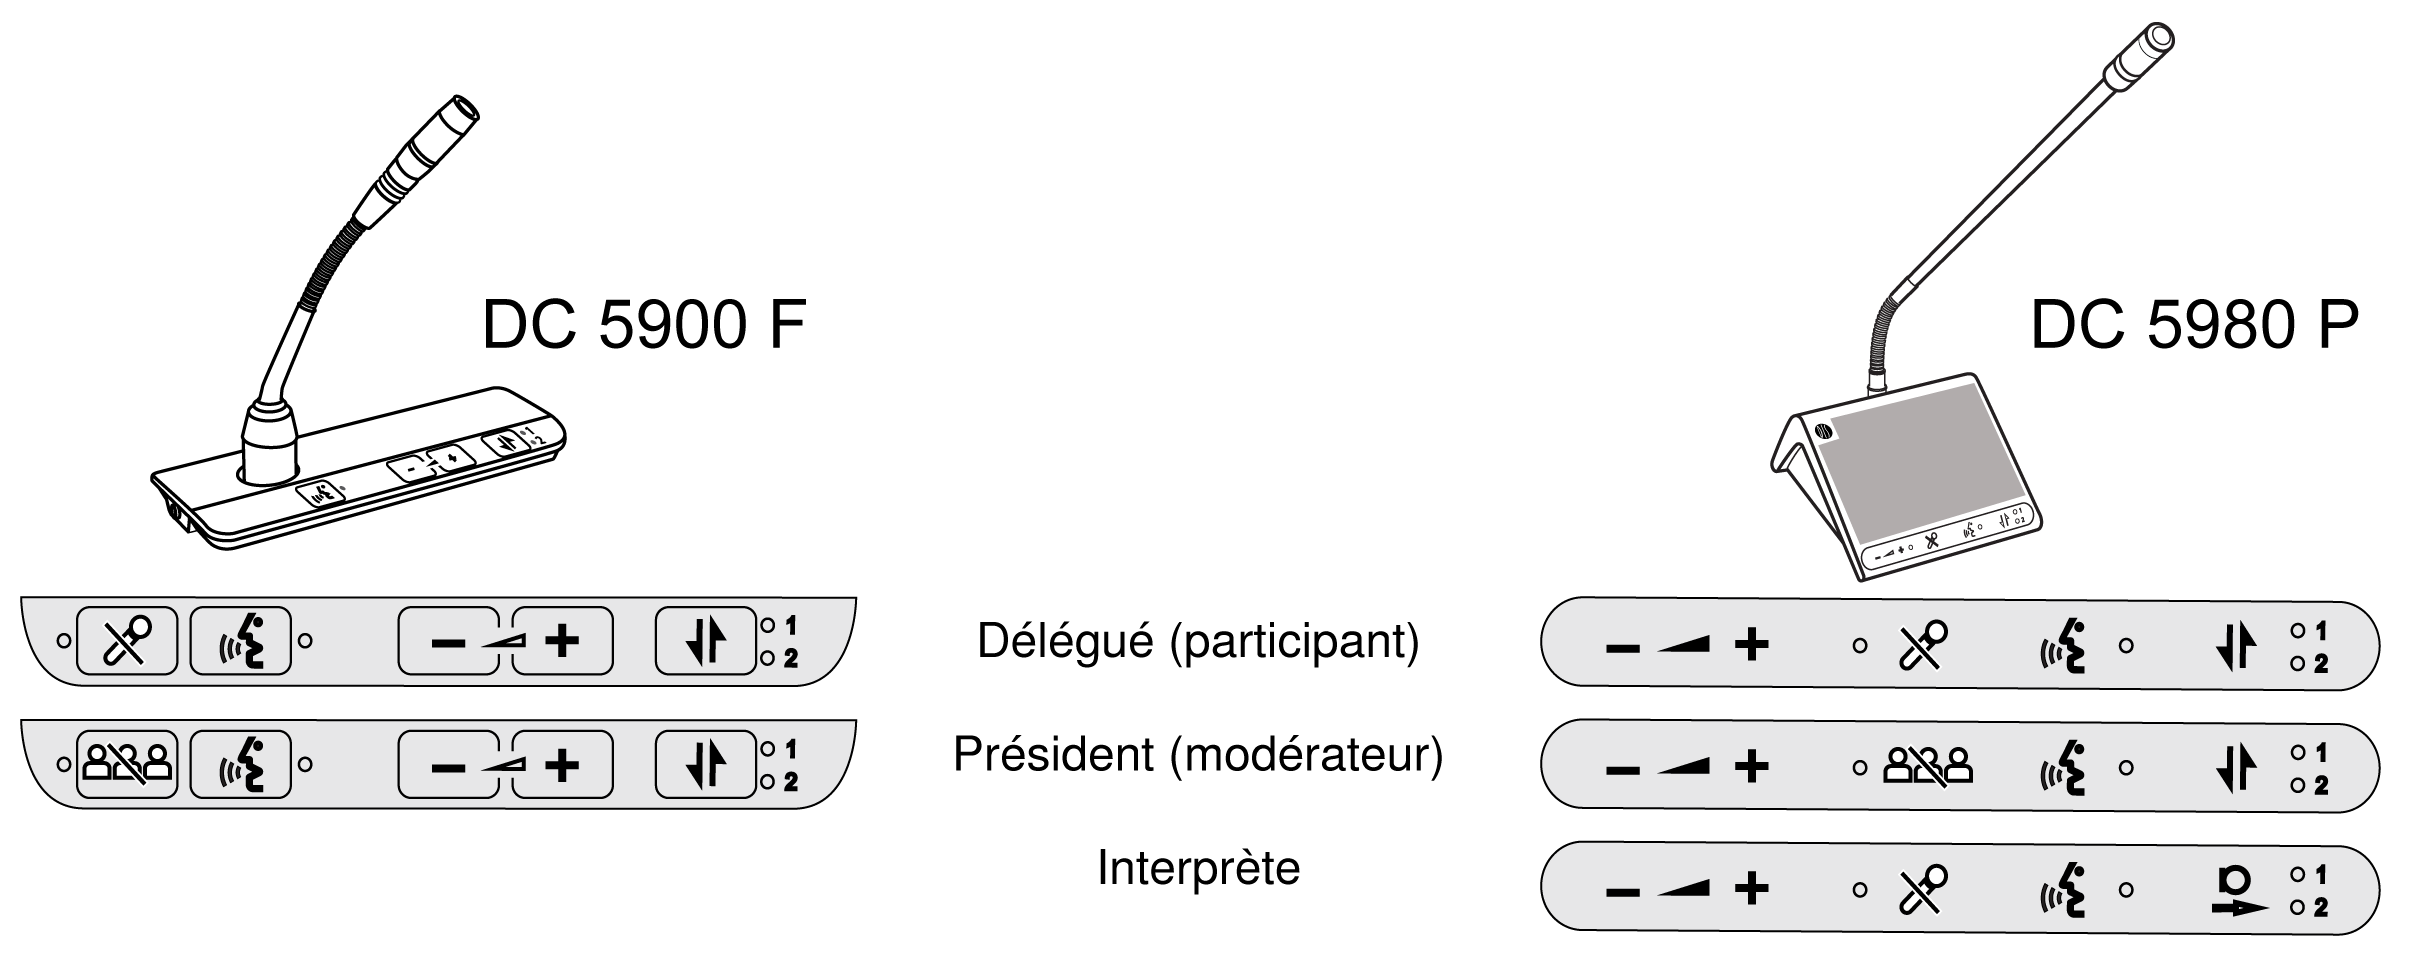 Delegate, Chairman, and Interpreter button overlays for DC 5900 F and DC 5980 P discussion units